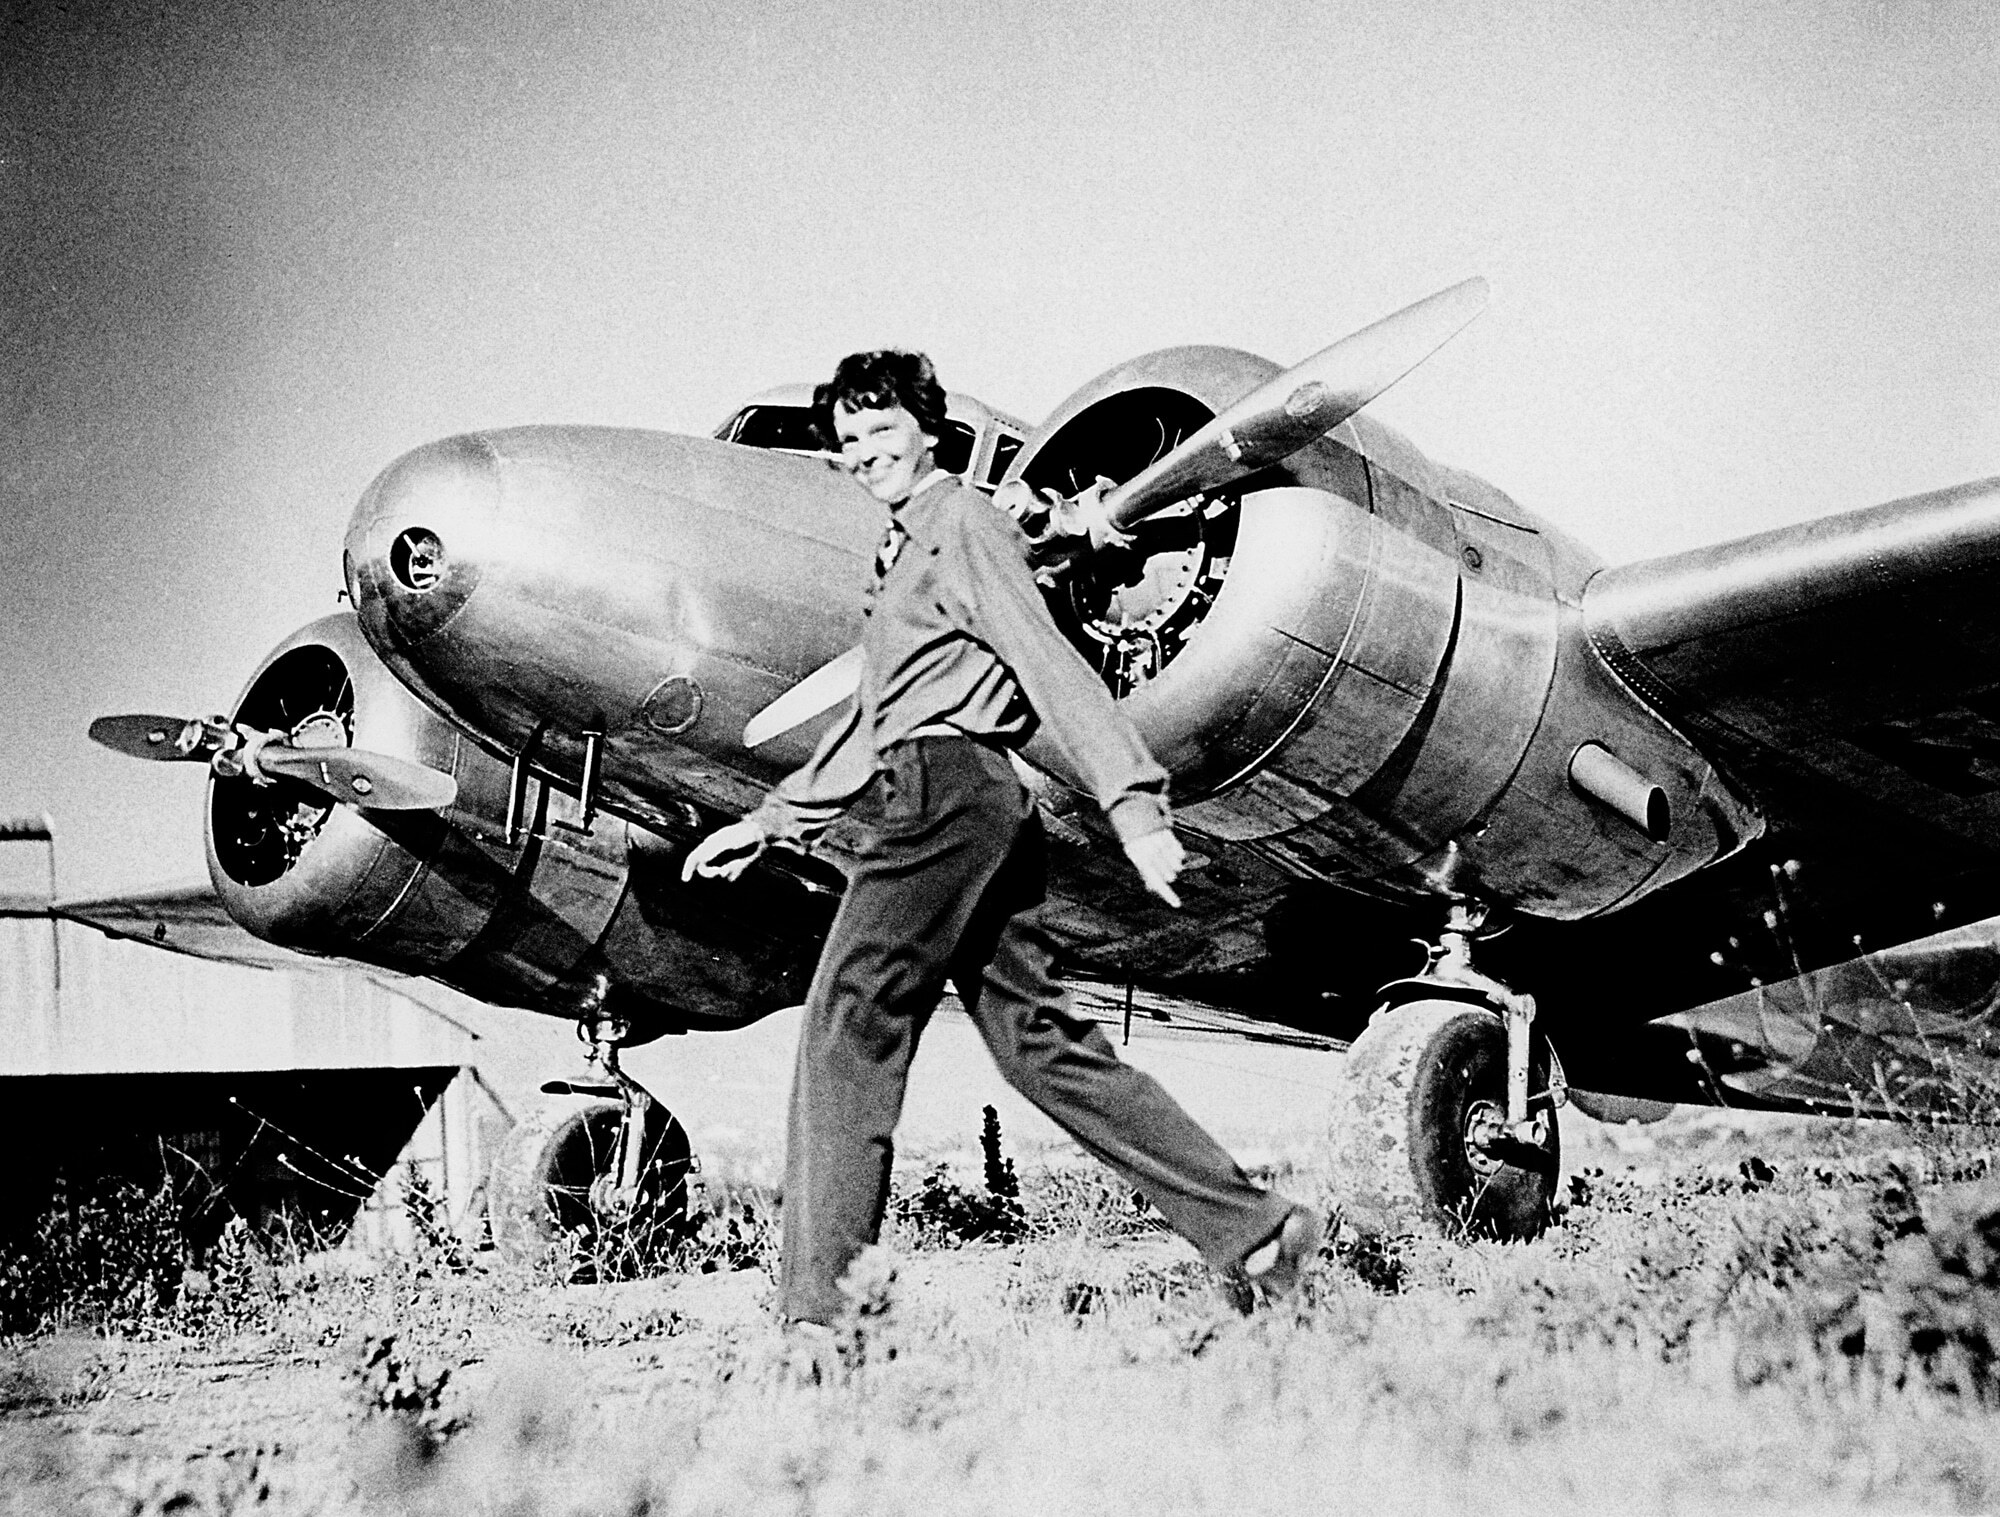 amelia earharts courage that made her the first woman to cross the atlantic by plane